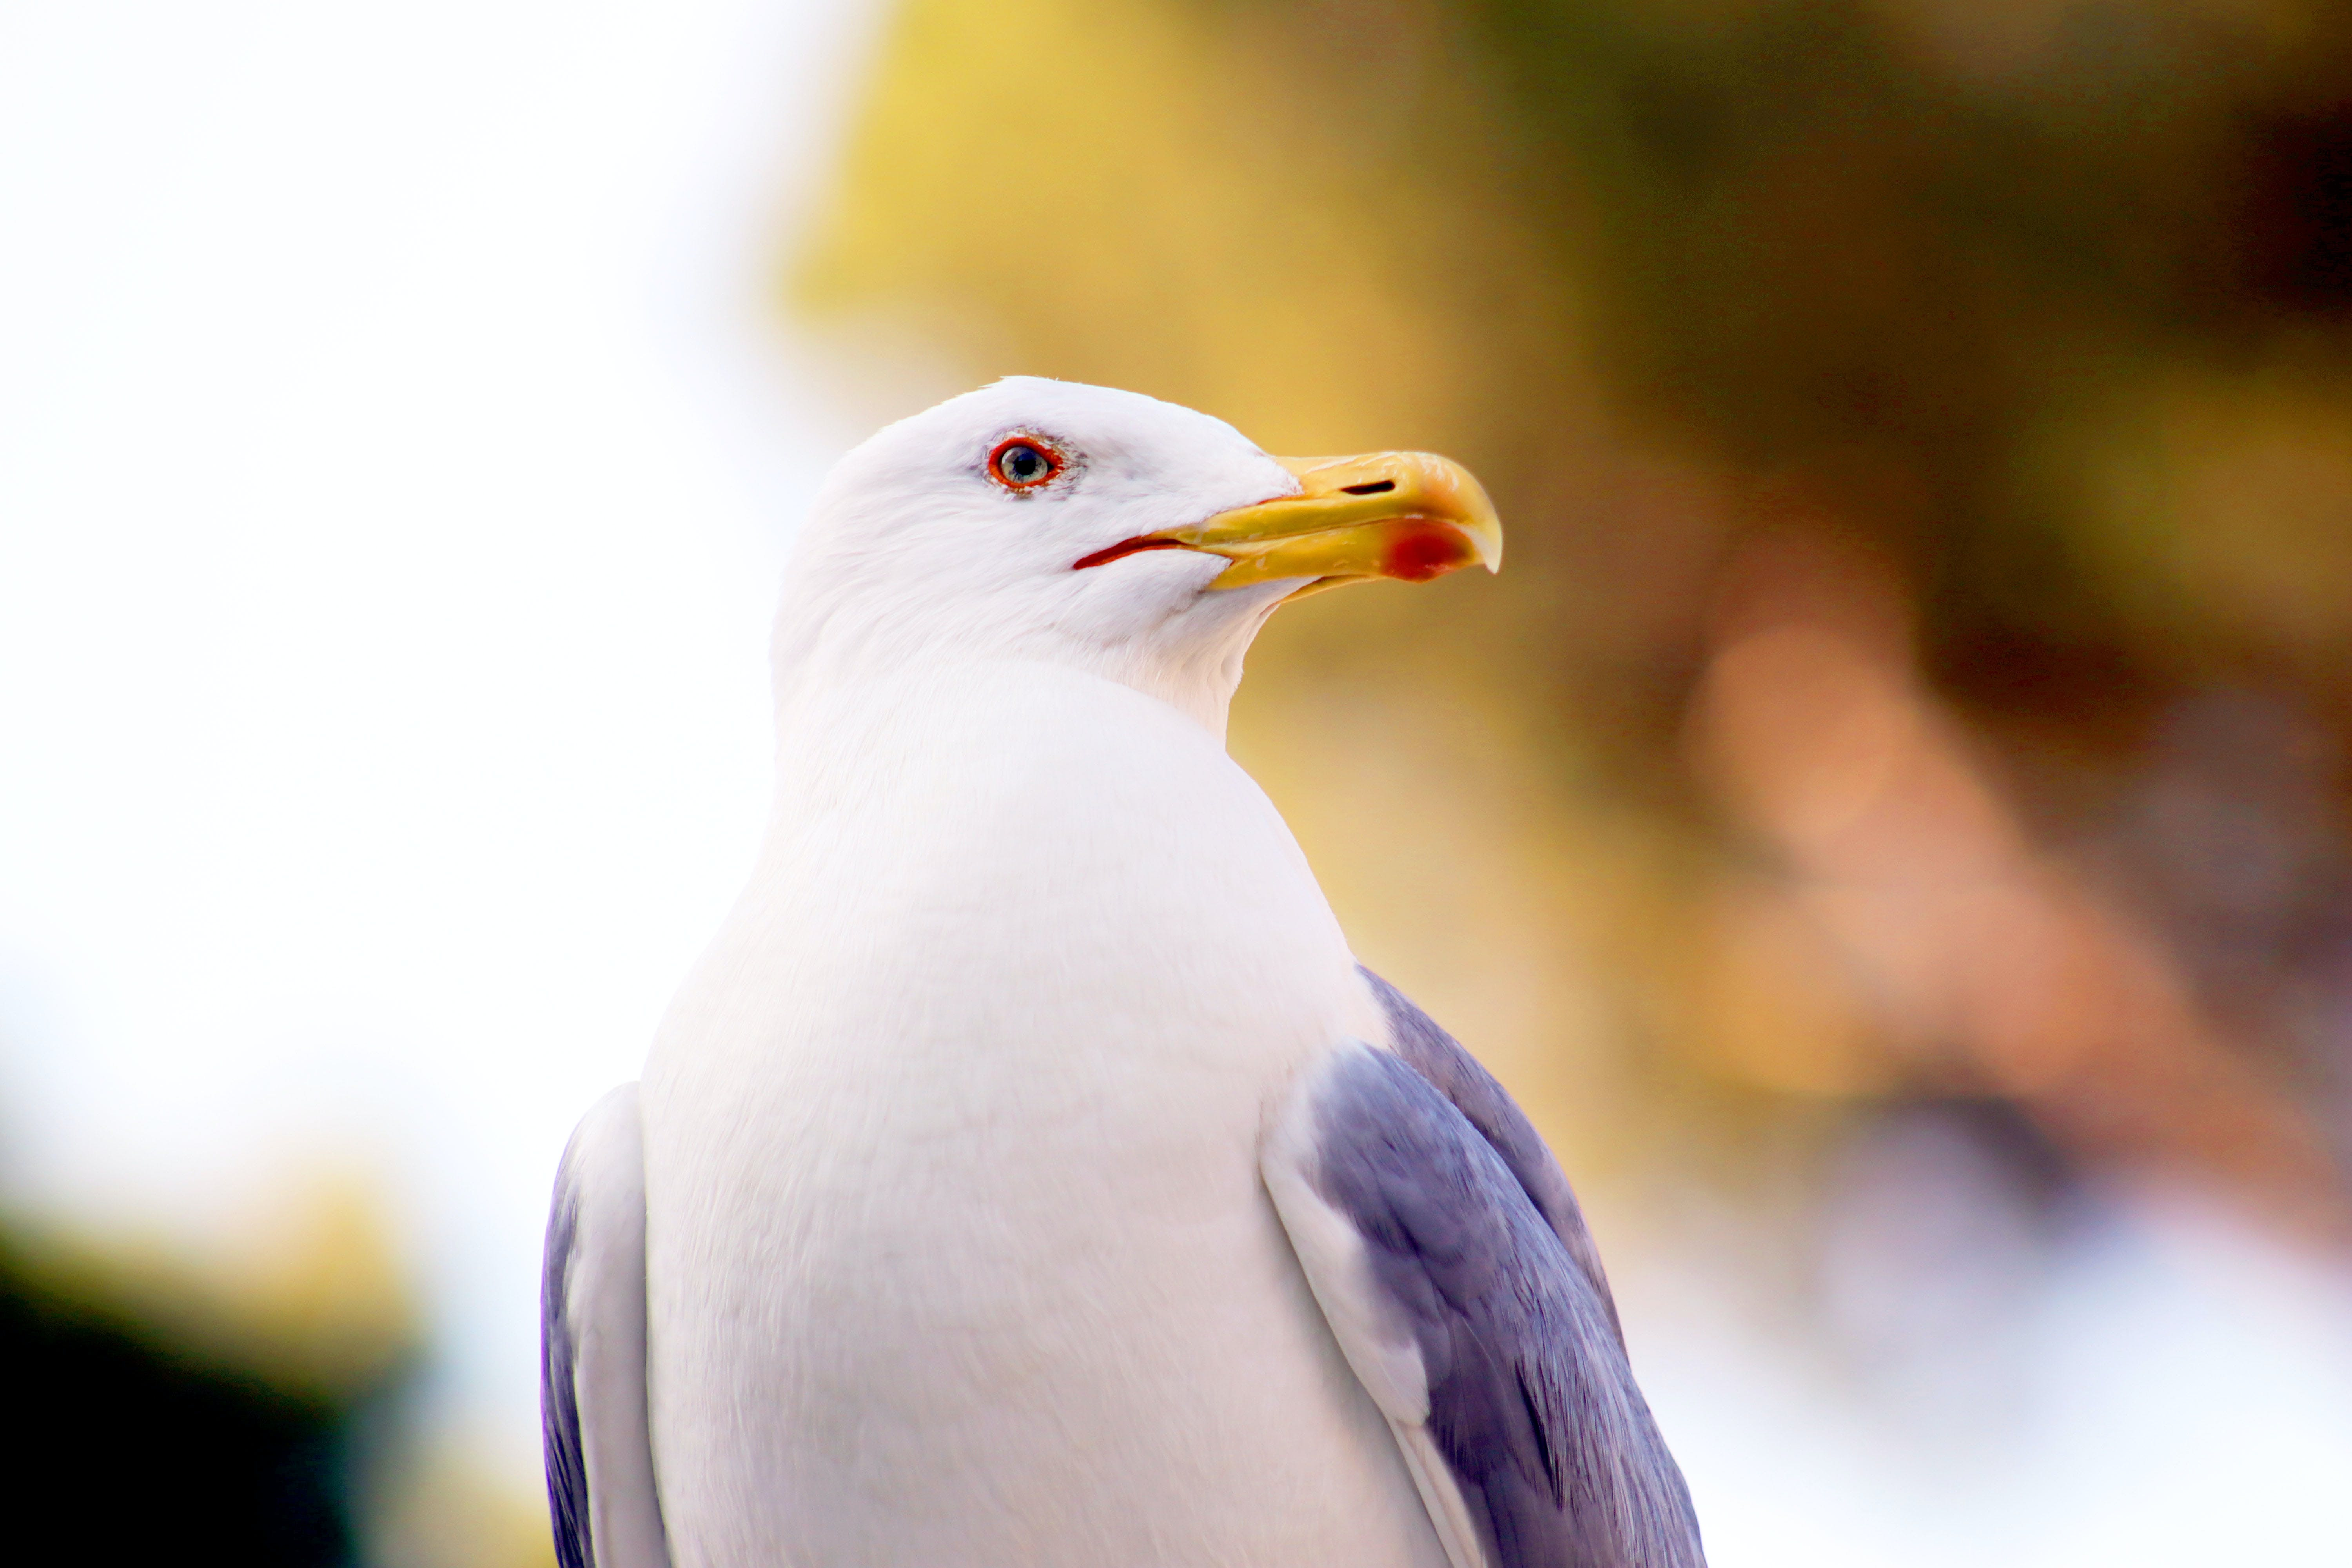 Micro Photography of White and Grey Bird